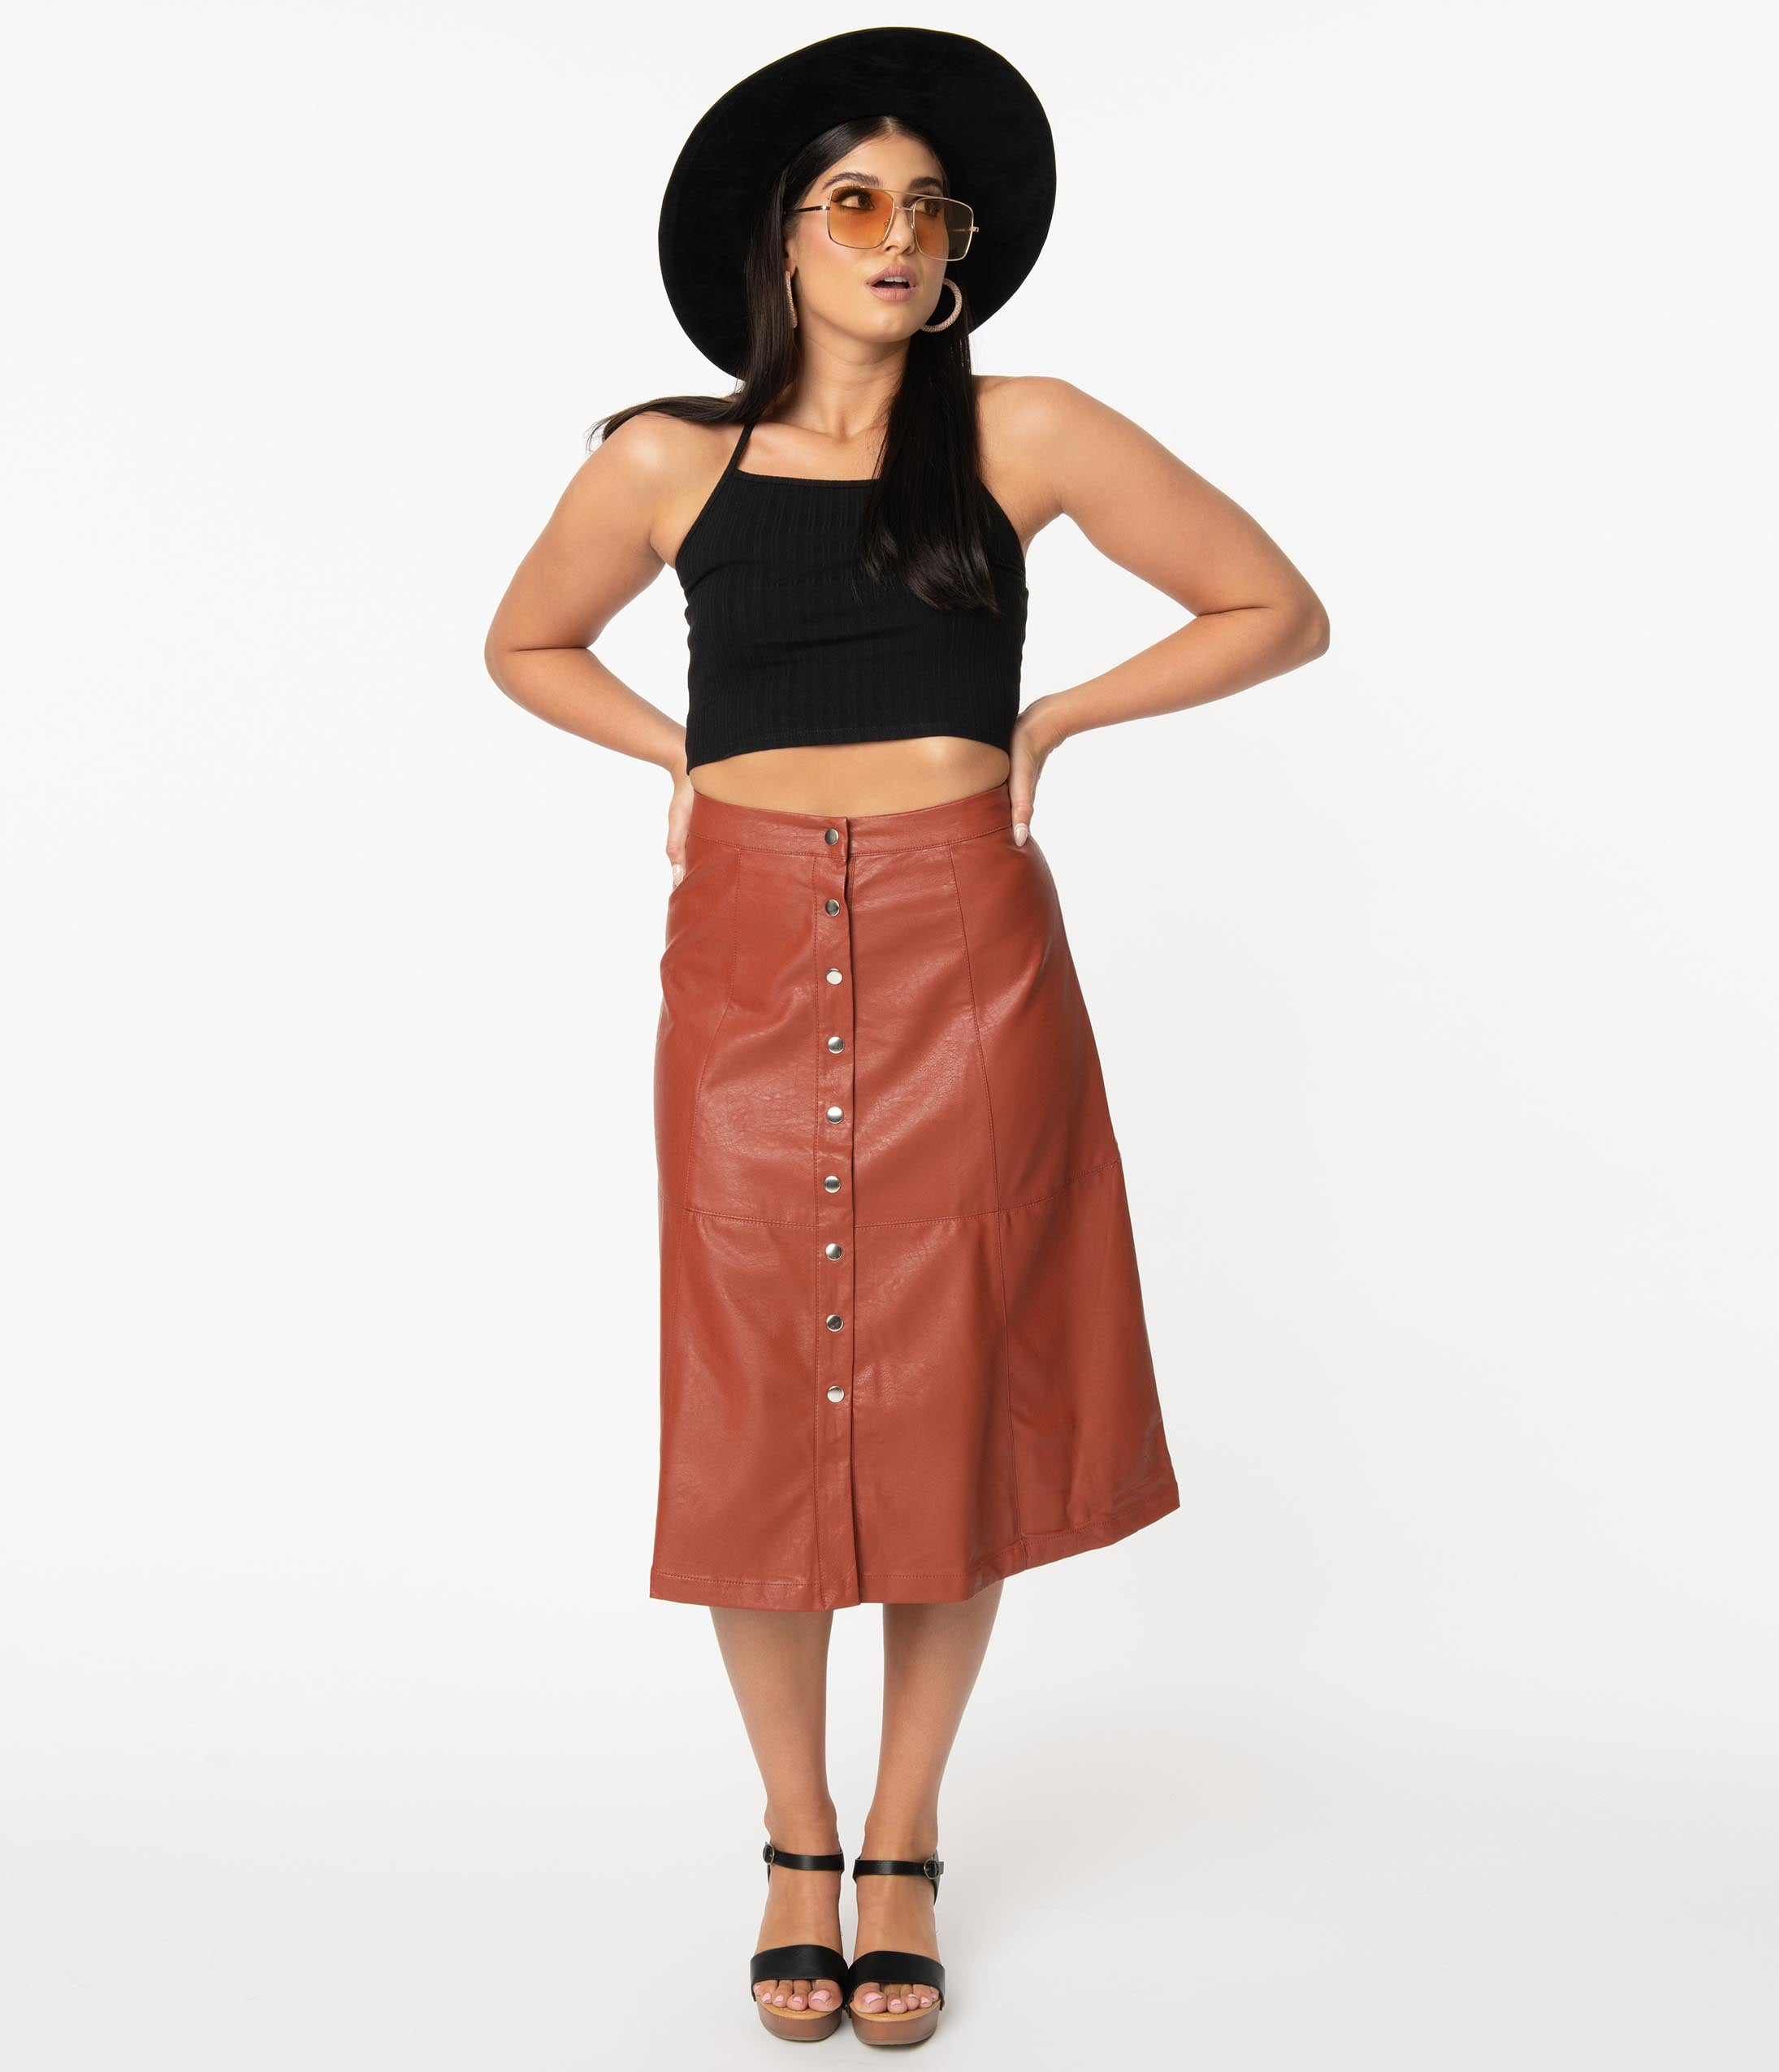 70s Fashion   What Did Women Wear in the 1970s? Retro Rust Leatherette Button Up Midi Skirt $58.00 AT vintagedancer.com